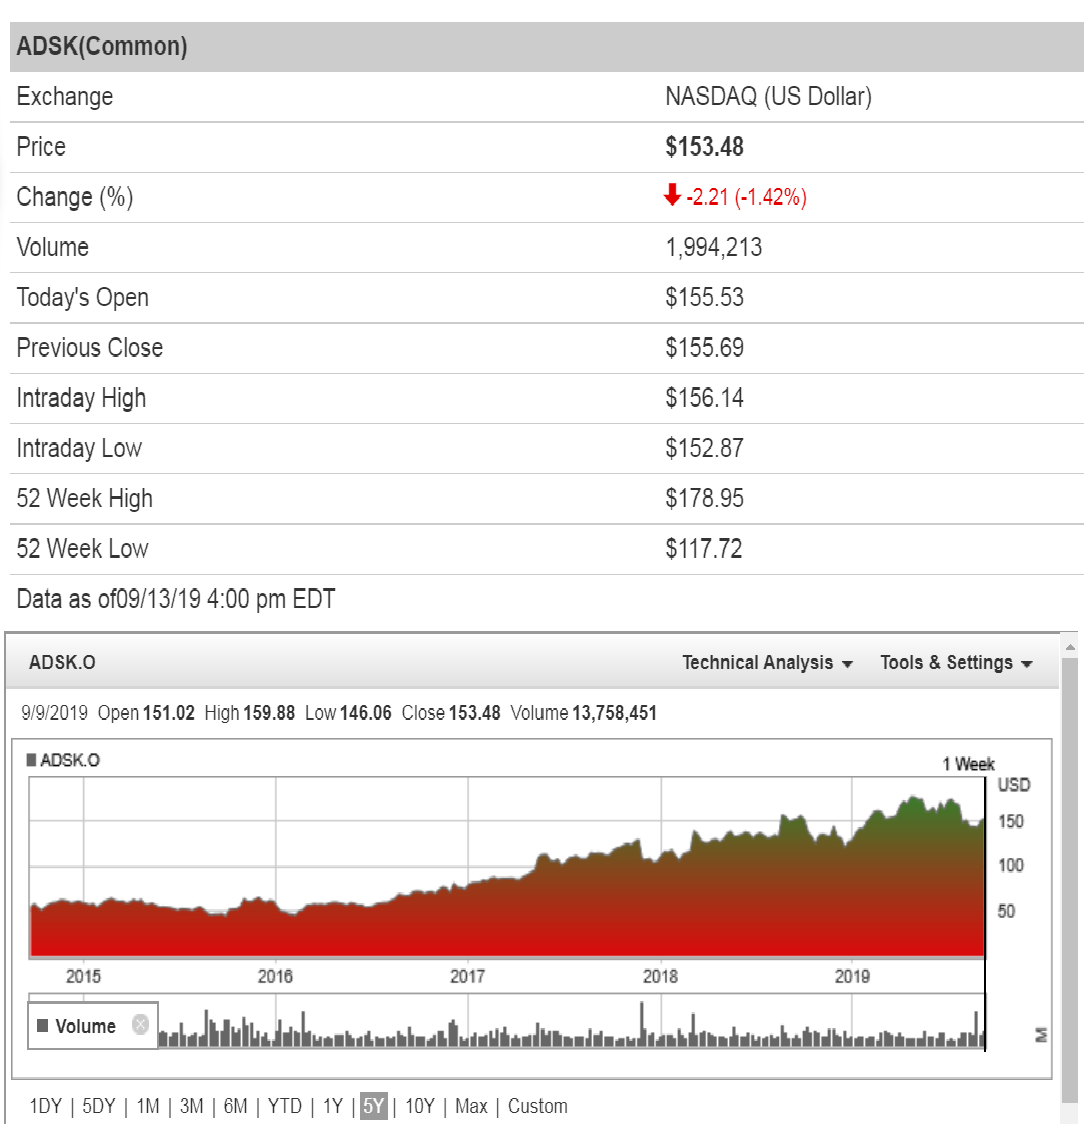 Autodesk (NASDAQ:ADSK) share price history over the last 5 years